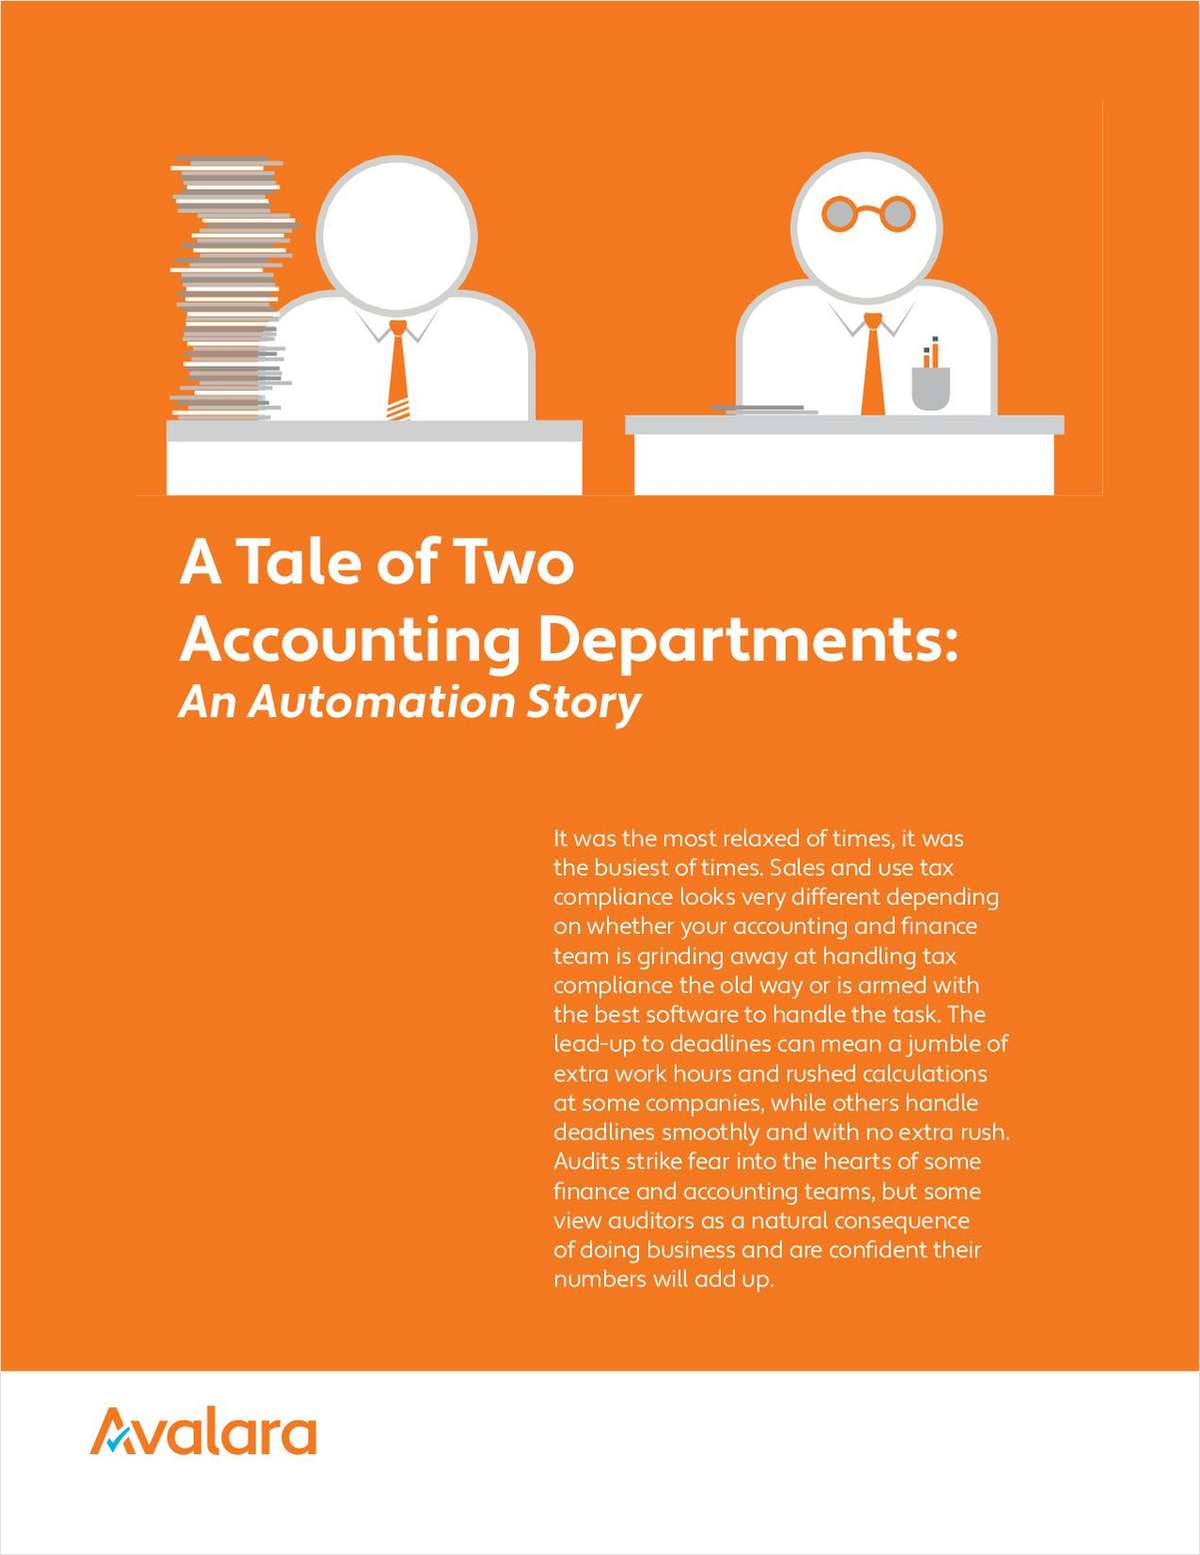 A Tale of Two Accounting Departments: An Automation Story